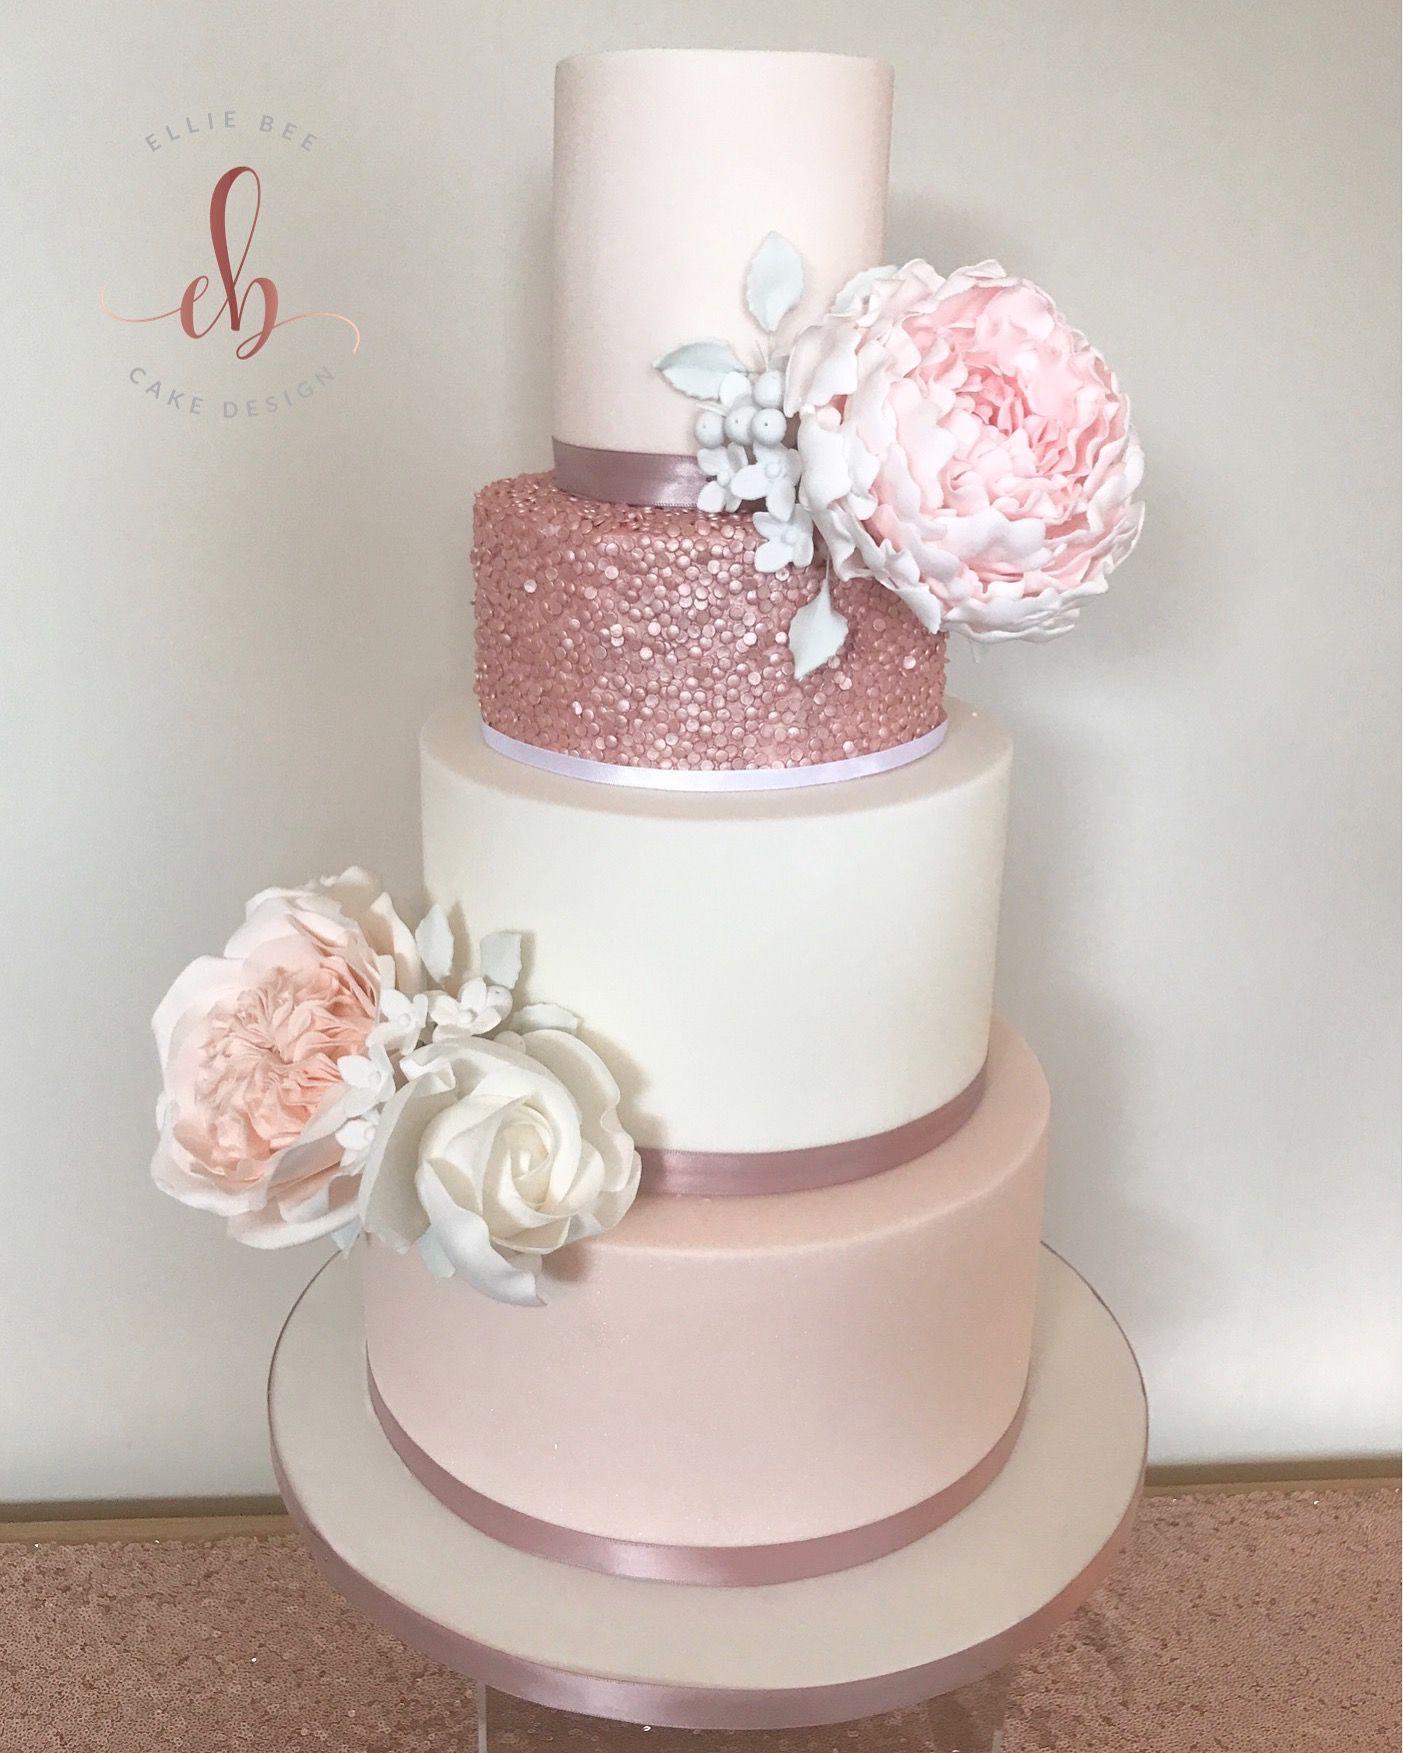 Gold Wedding Cake Decorations: Blush, White And Rose Gold Wedding Cake. Four Tiers With